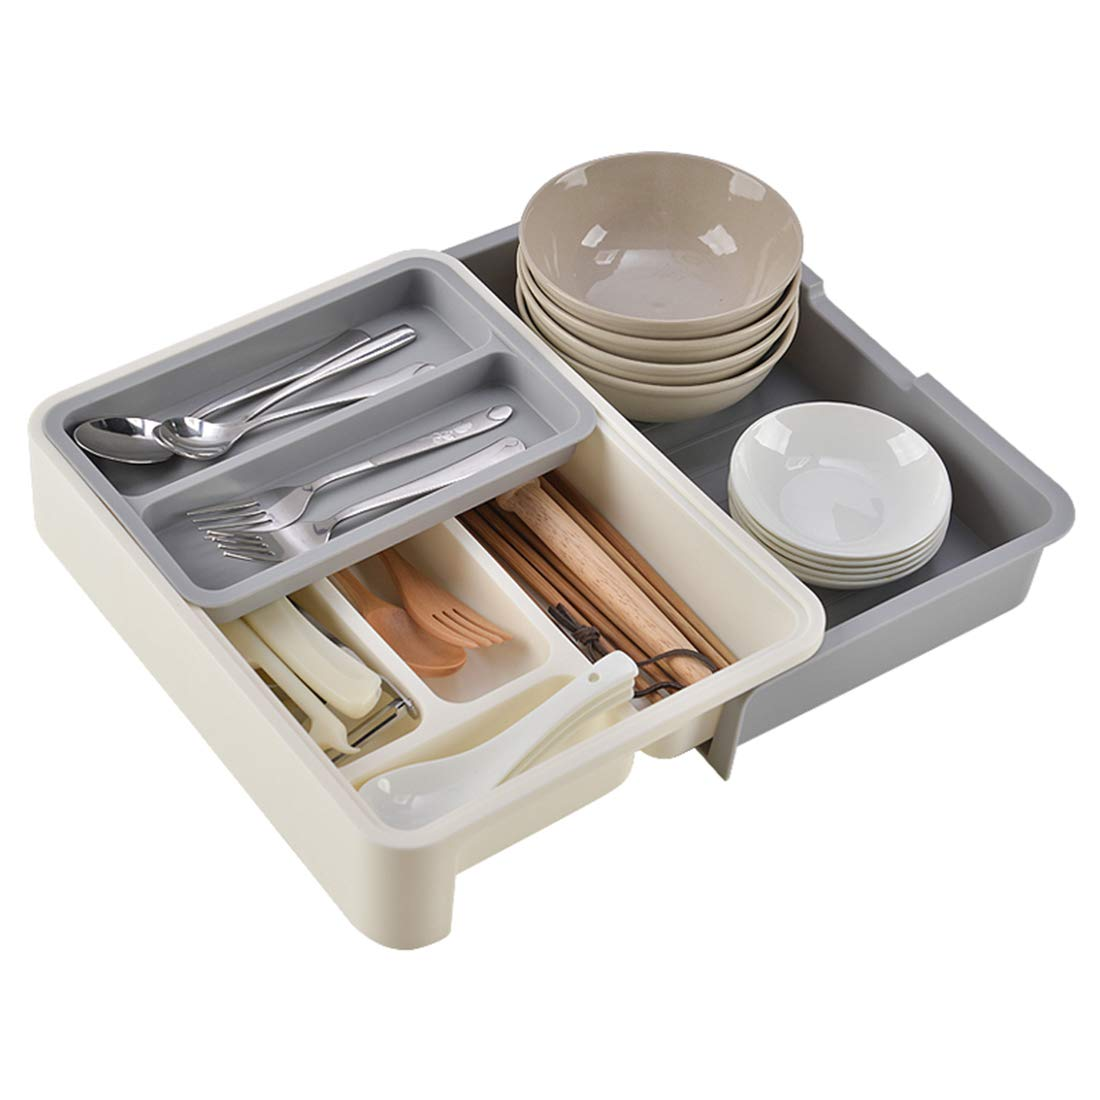 Sliding 2-Tier Plastic Drawer Organizer for Utensils,White Extendable Plastic Cutlery Tray with Compartments,Kitchen Drawer Dividers